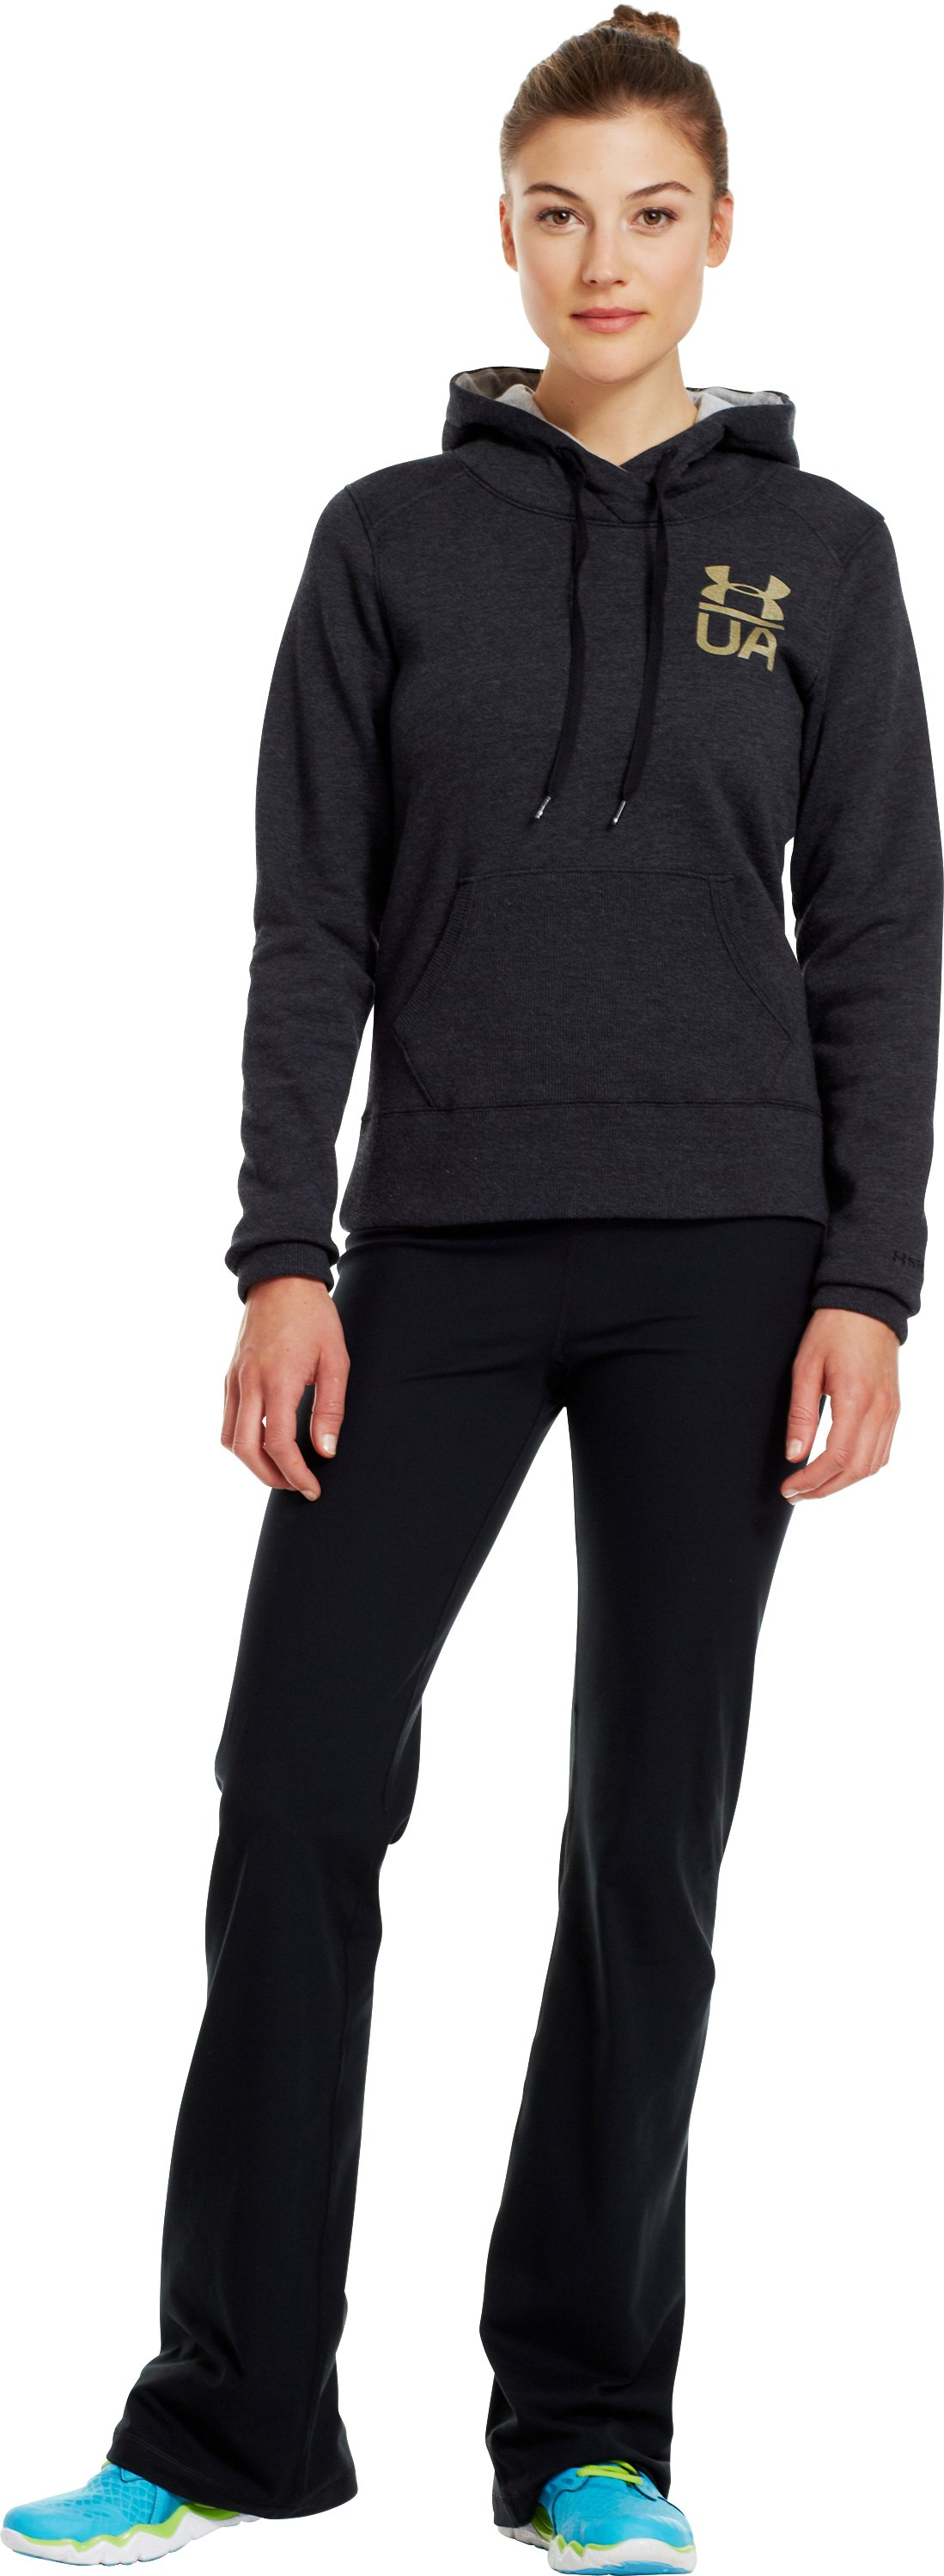 Women's Charged Cotton® Legacy Hoodie, Black